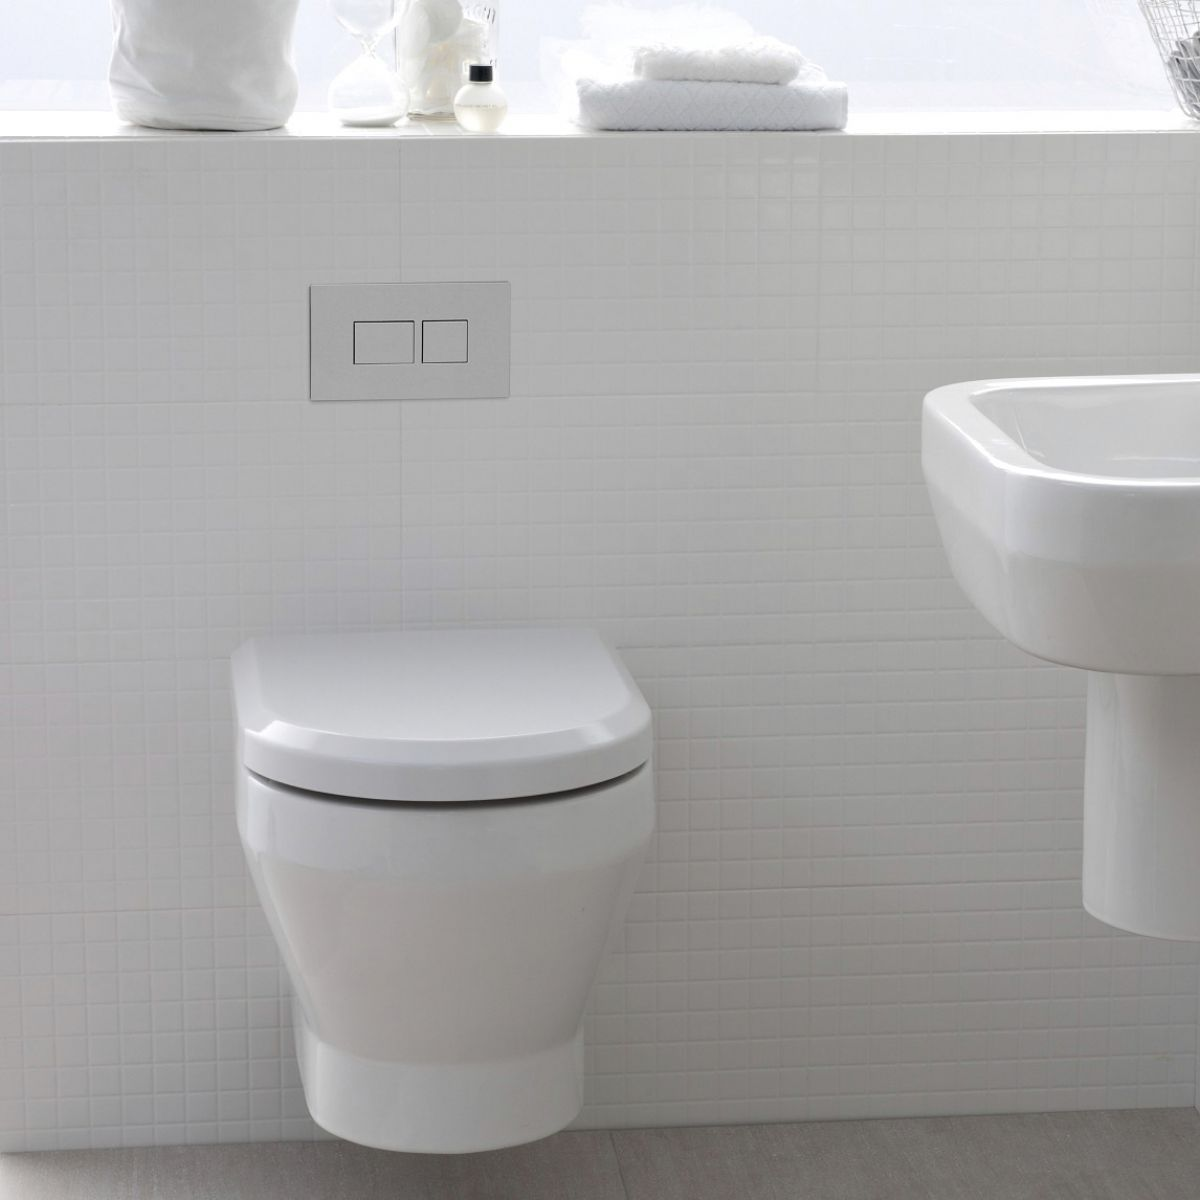 Britton Curve Wall Hung Toilet Uk Bathrooms